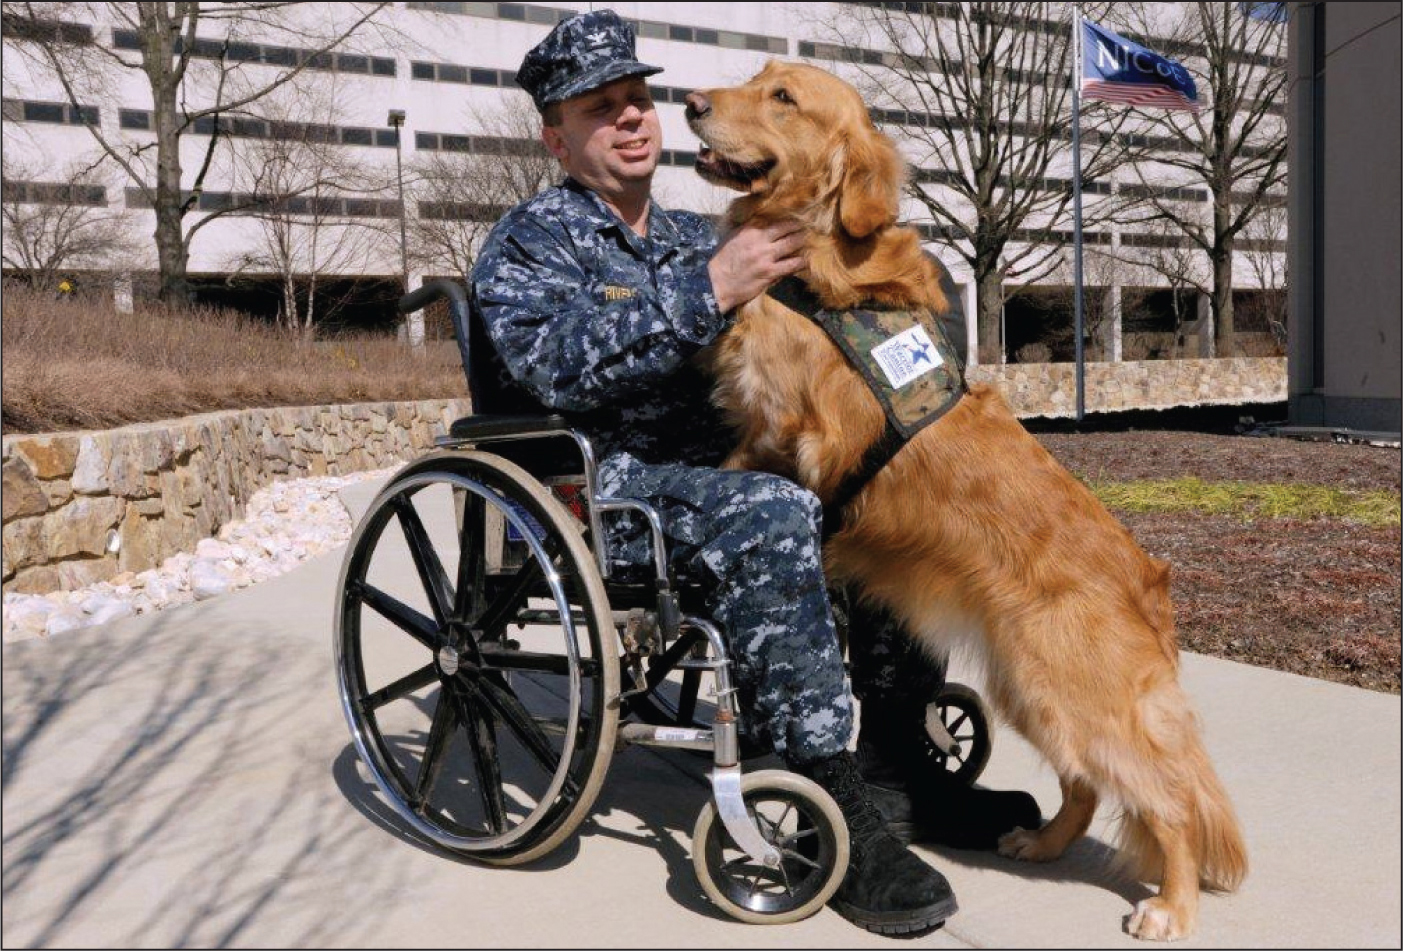 Valerie, a golden retriever, demonstrates her ability to connect with a Marine at the National Intrepid Center of Excellence.Image courtesy of Rick Yount, MS, LSW.